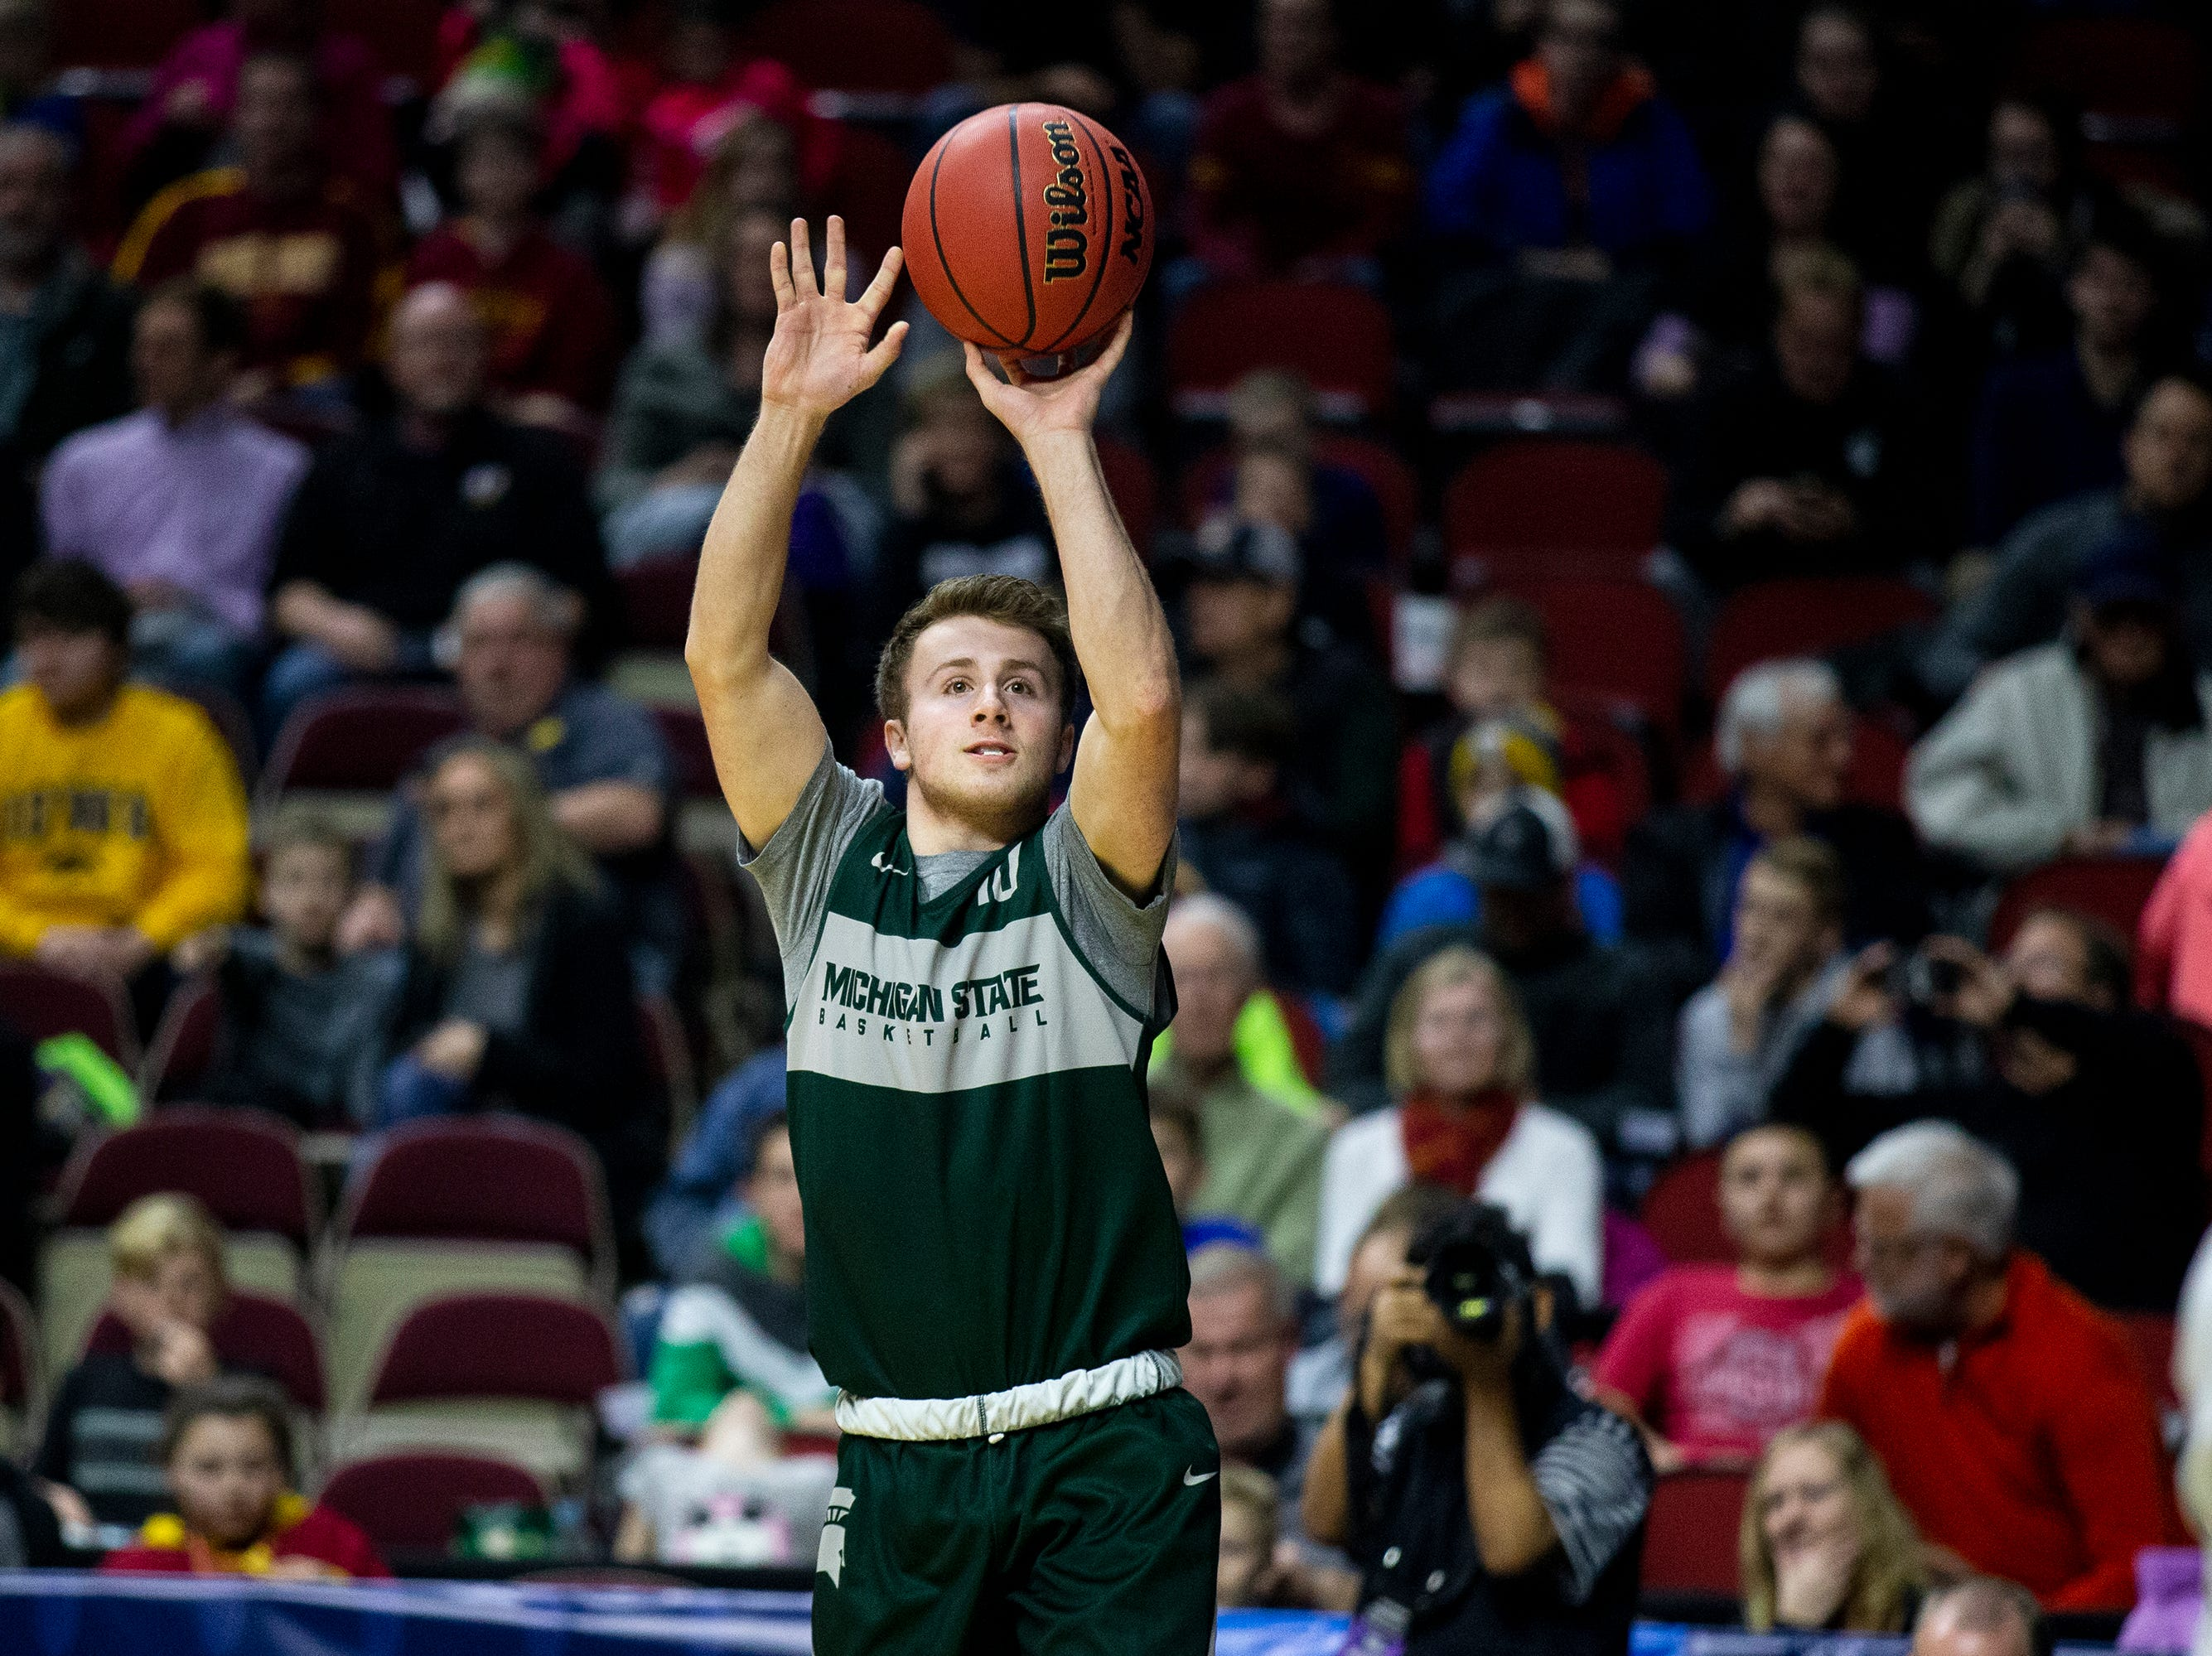 Michigan State's Jack Hoiberg shoots the ball during Michigan State's open practice before the first round of the NCAA Men's Basketball Tournament on Wednesday, March 20, 2019, at Wells Fargo Arena in Des Moines, Iowa.